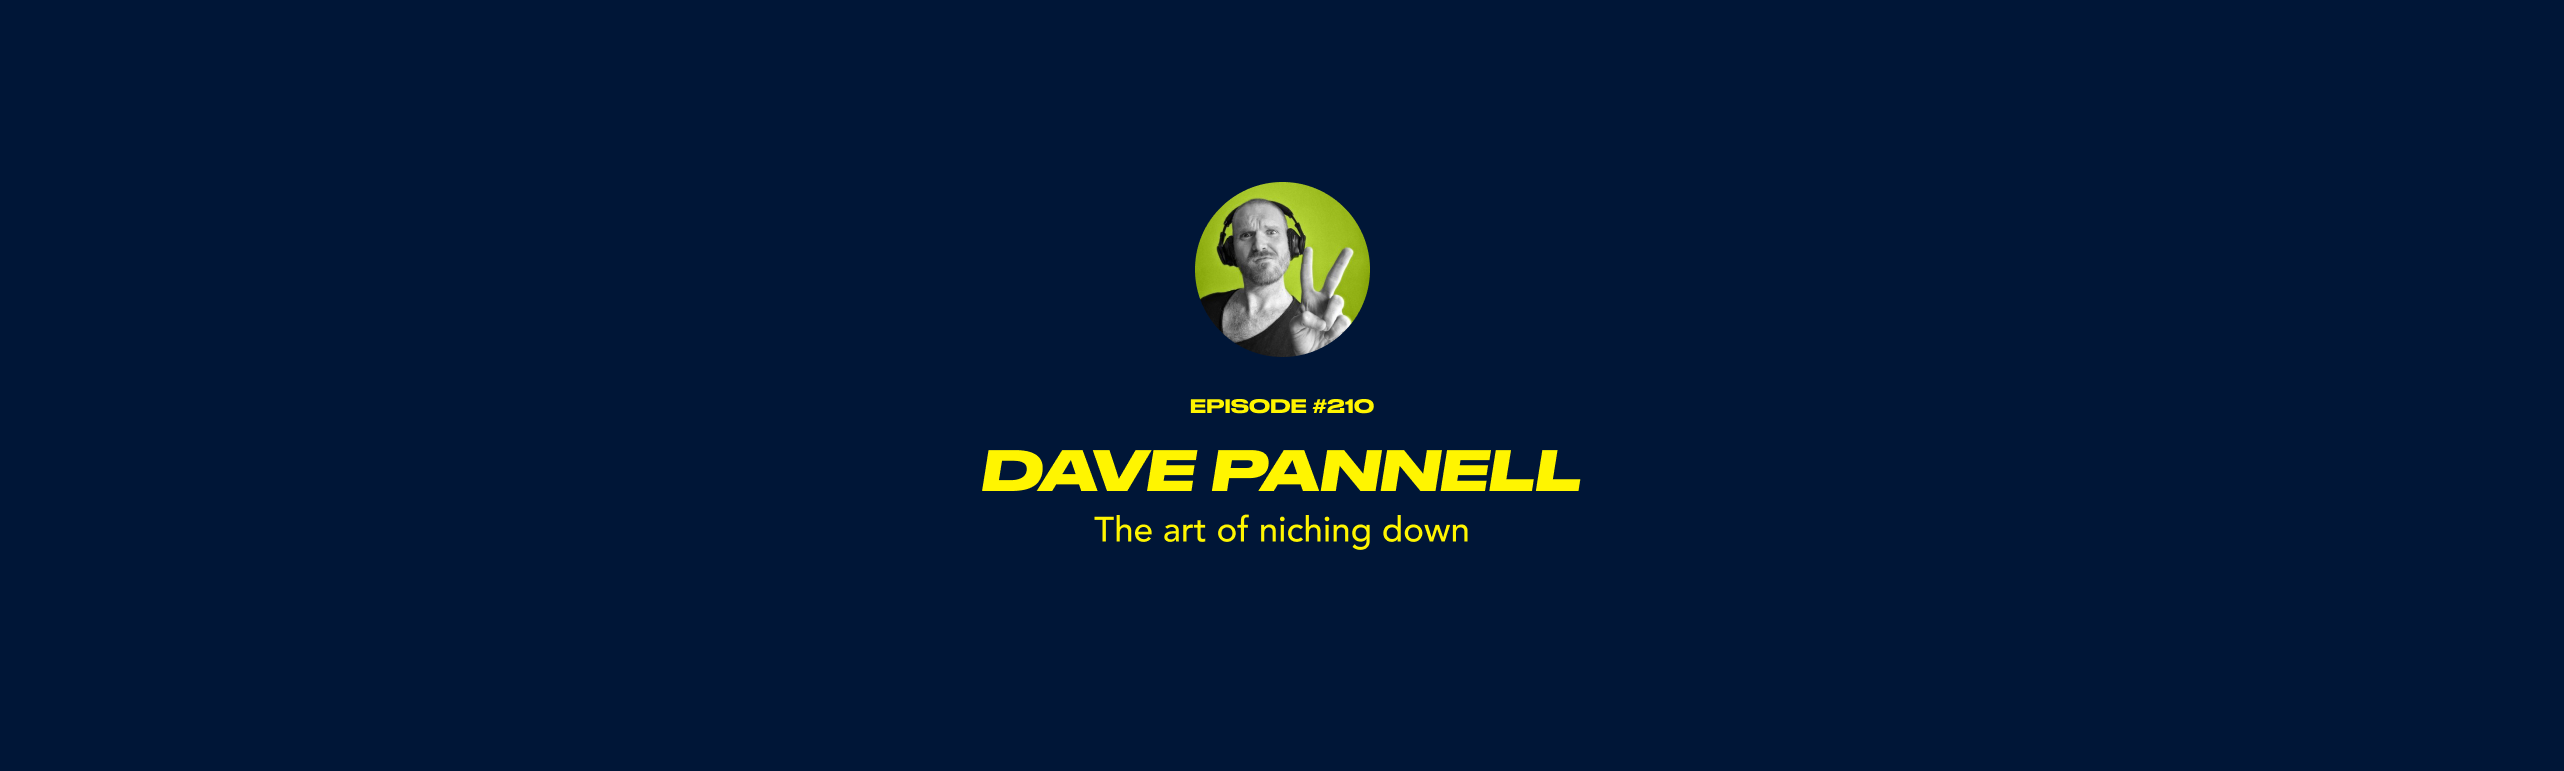 Dave Pannell - The art of niching down